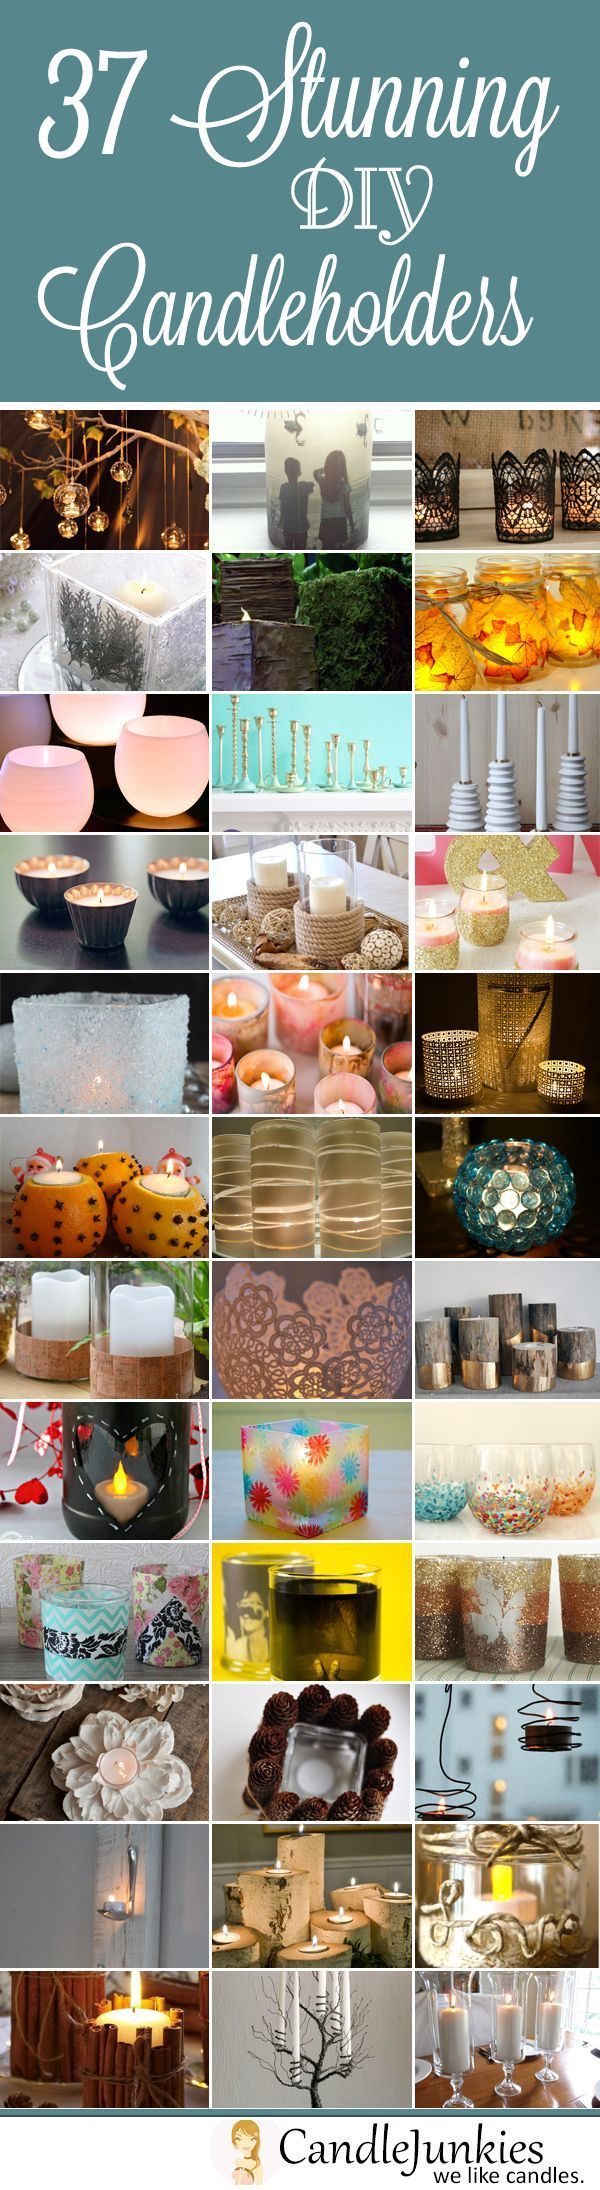 A list of 37 absolutely stunning DIY candle holders and votive's. #candlemakingtips